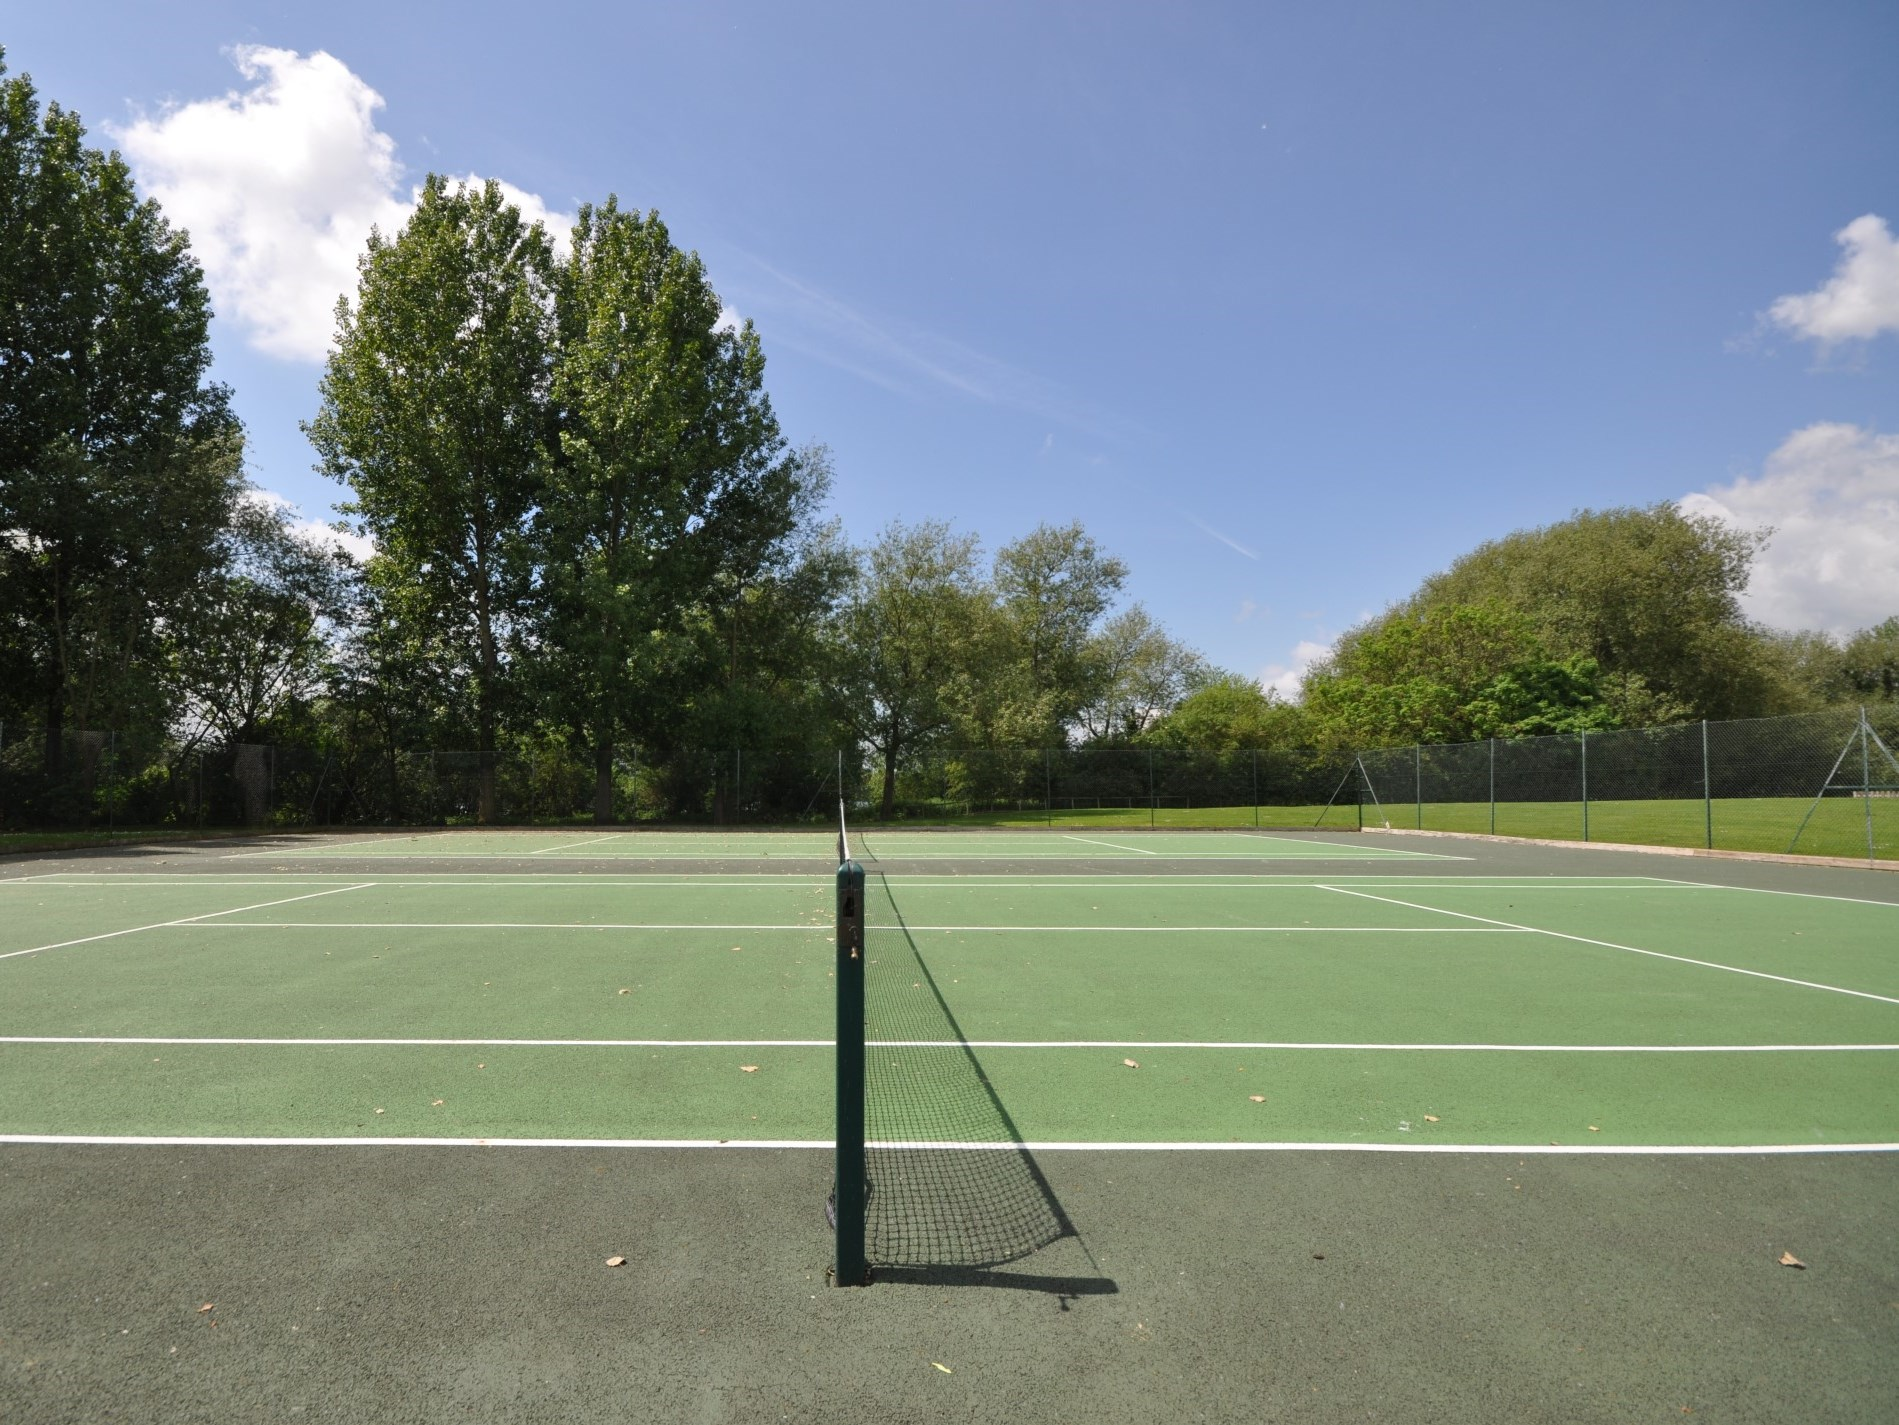 It's time for tennis